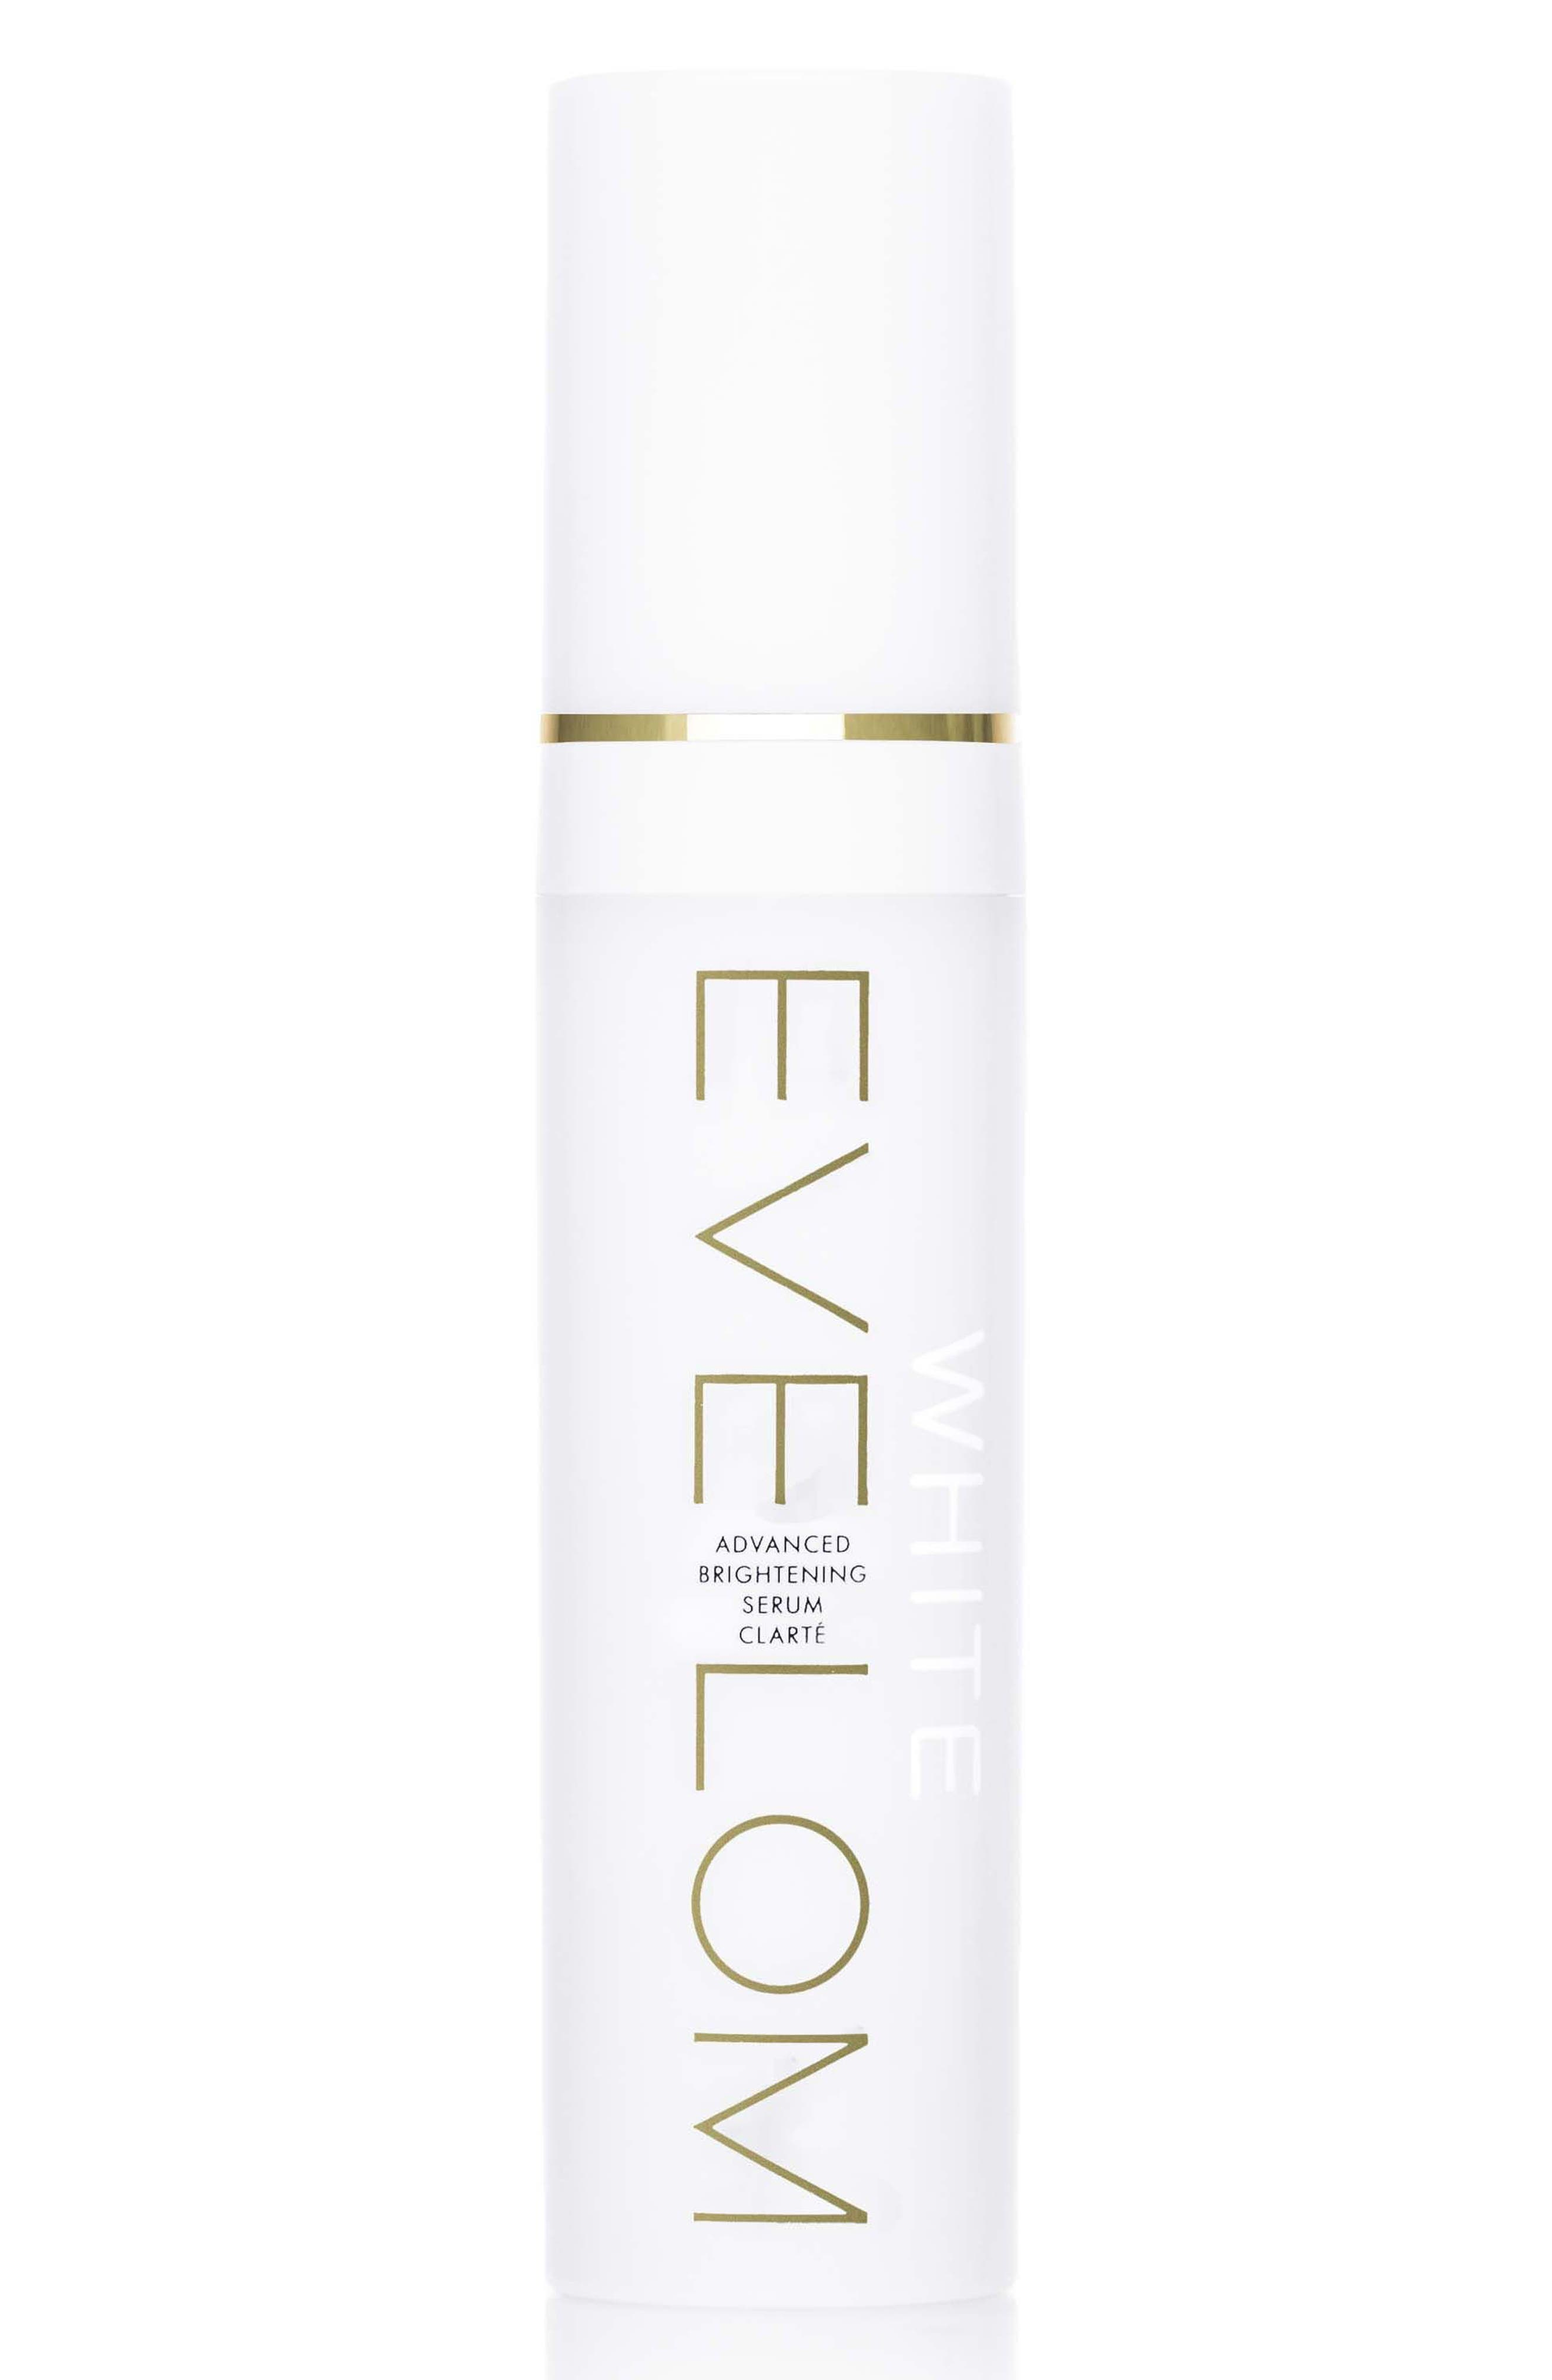 Alternate Image 1 Selected - SPACE.NK.apothecary EVE LOM White Advanced Brightening Serum